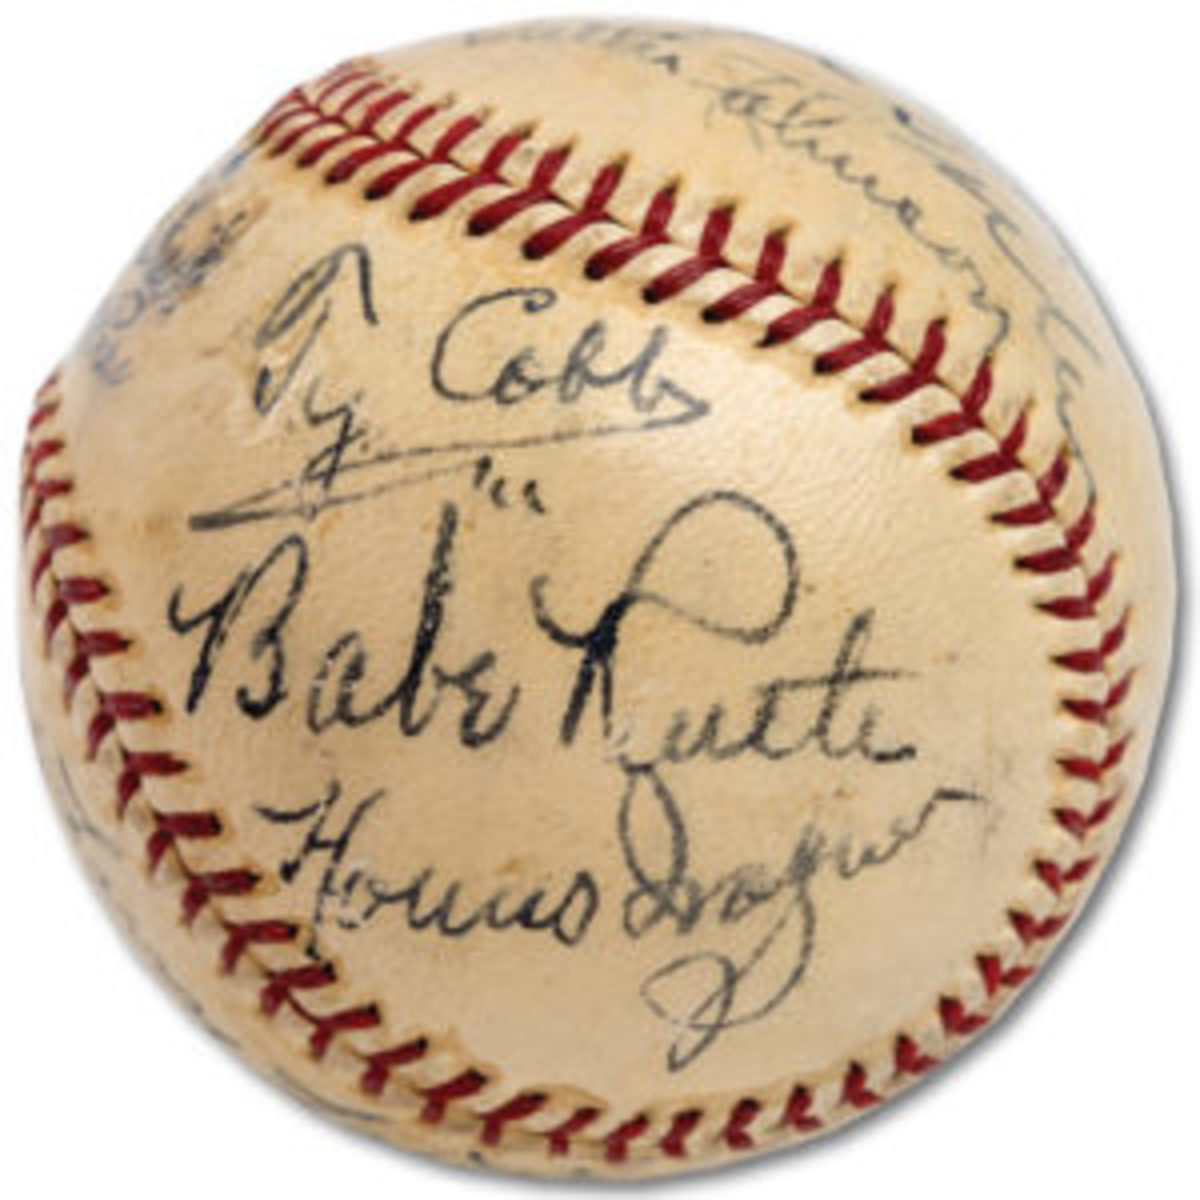 This baseball, autographed by 11 members of the Baseball Hall of Fame's 1939 inaugural class, sold for $623,369 in August 2018. (Image courtesy PSA)